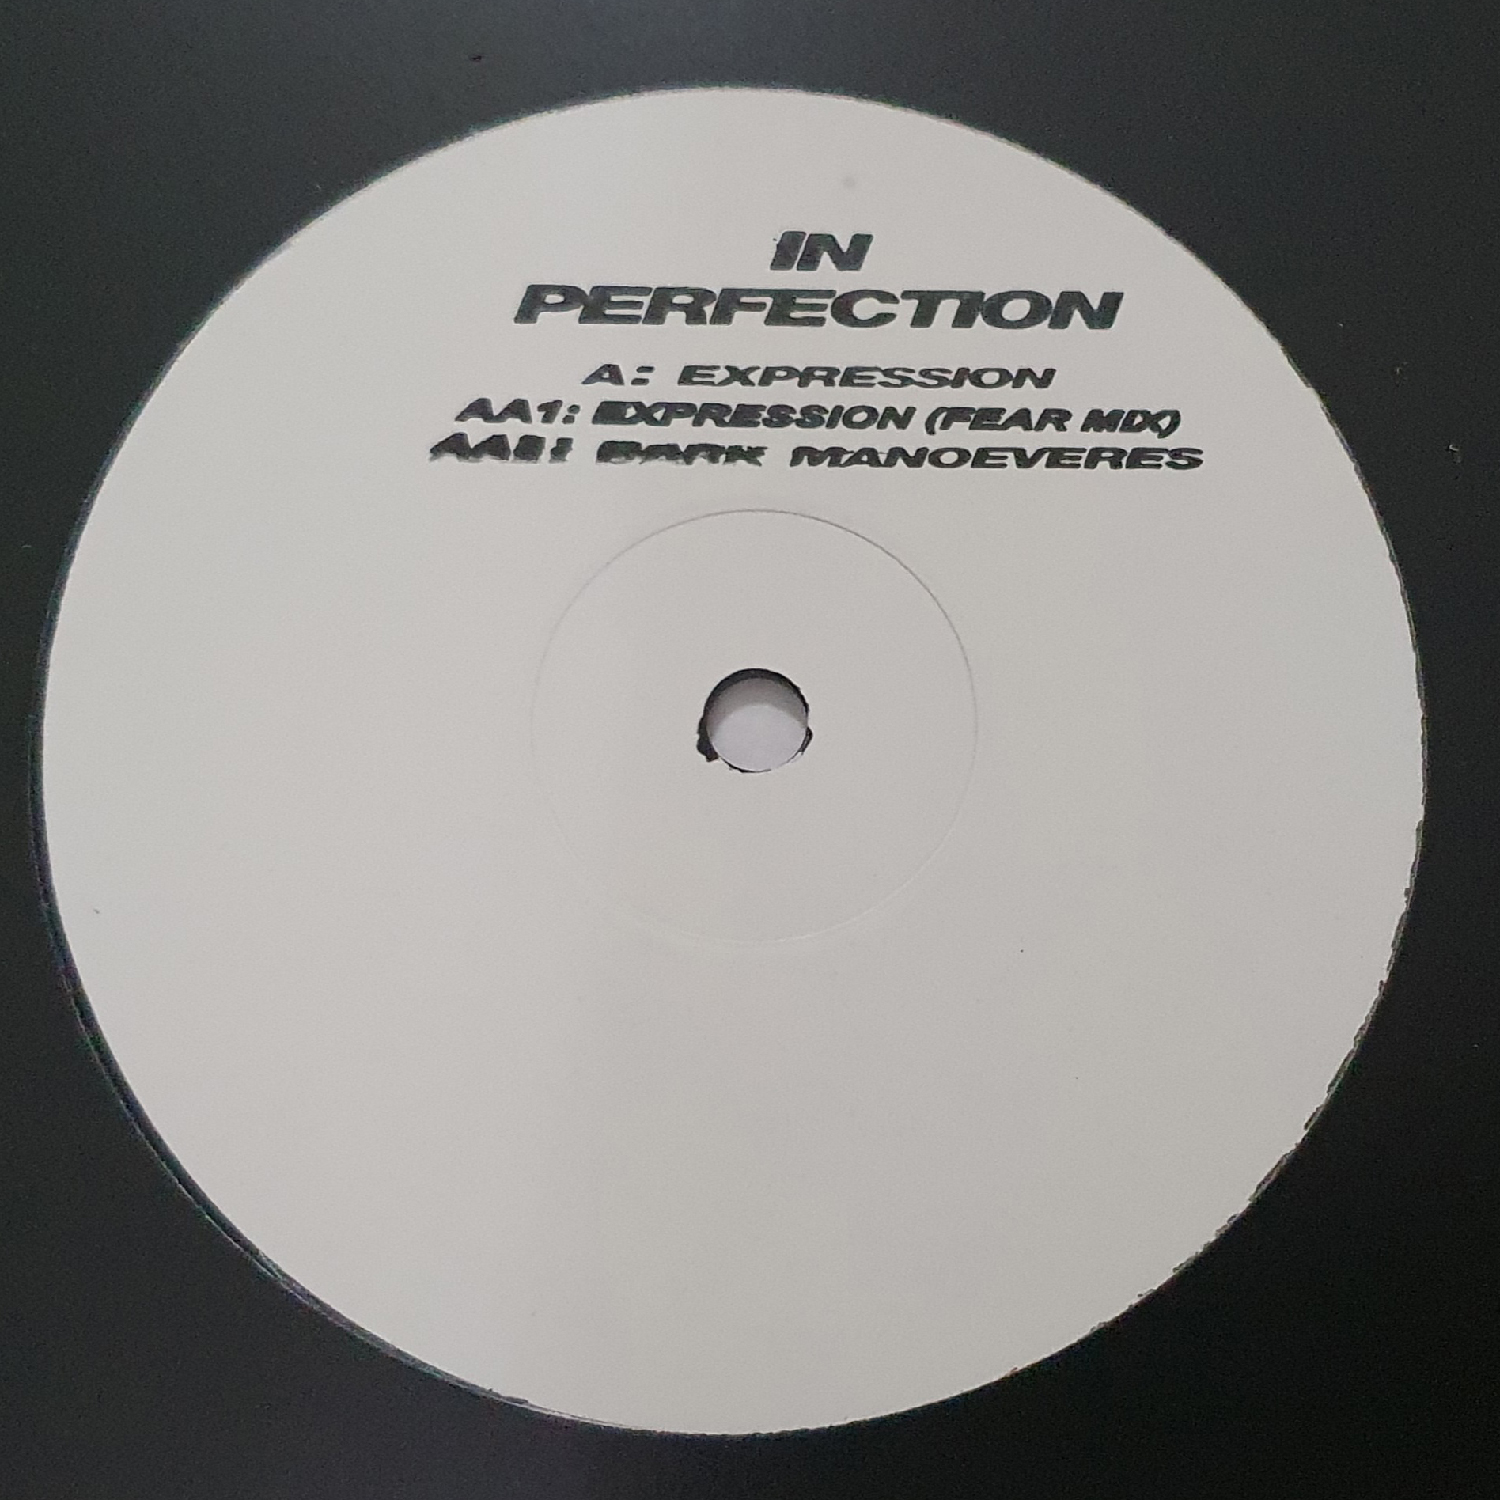 "[IP01] In Perfection - Expression EP (12"" Vinyl)"